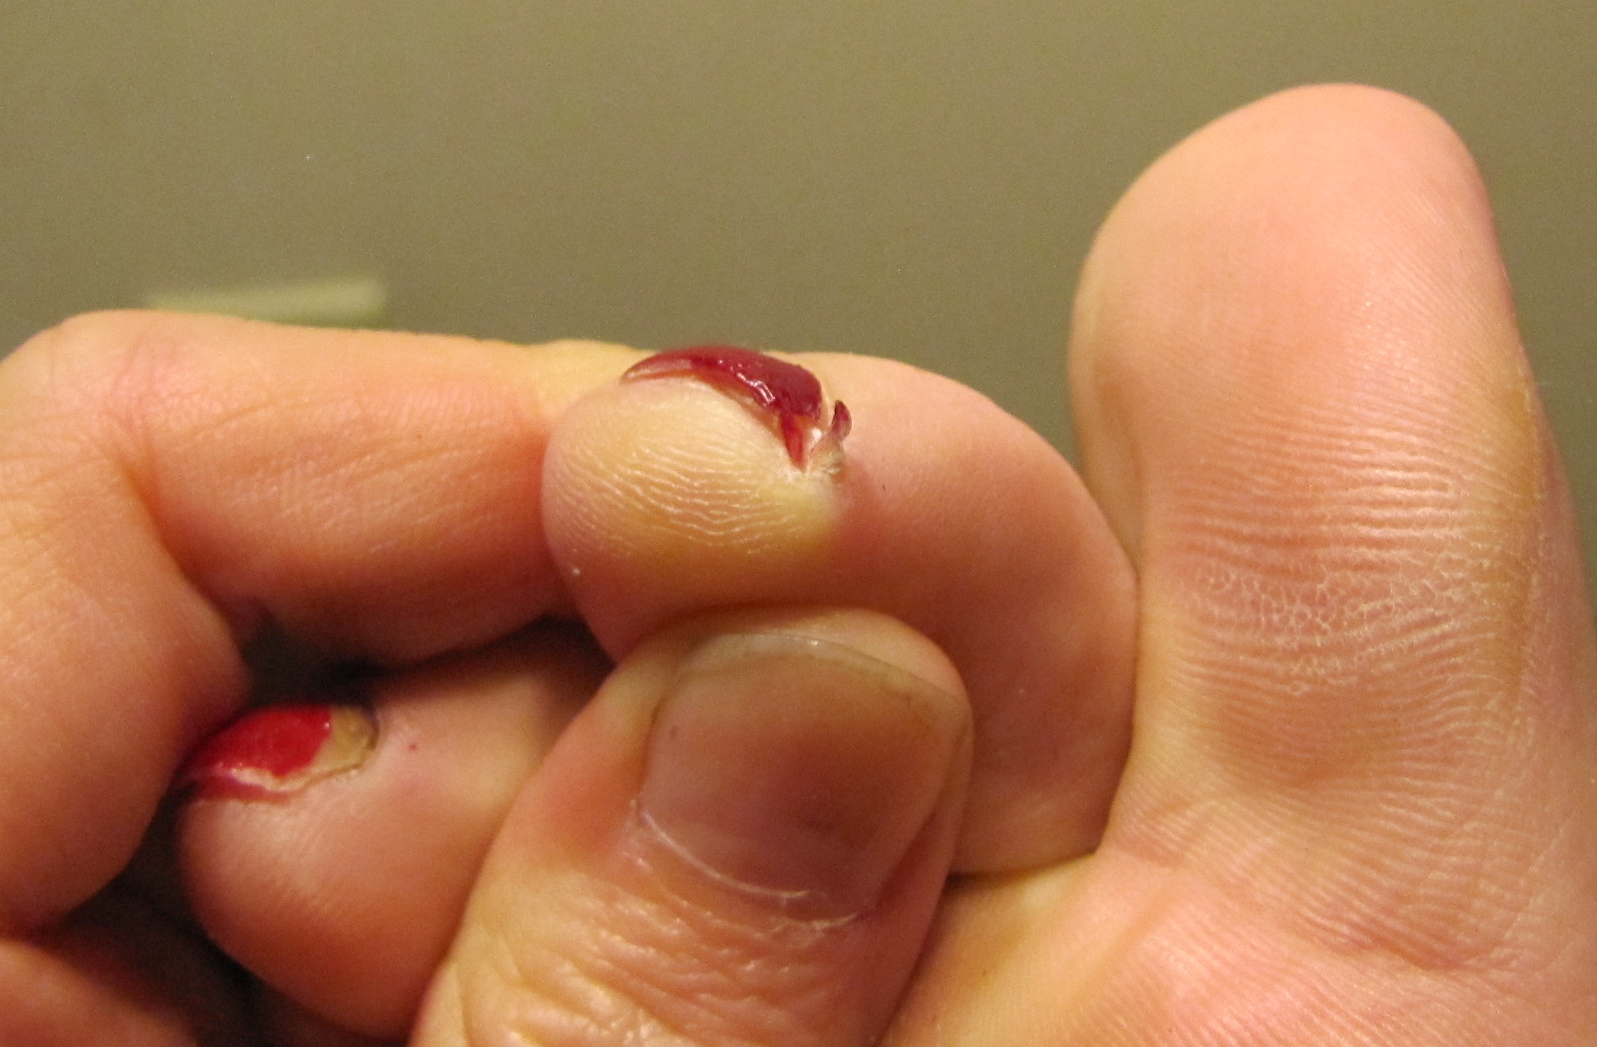 A Hangnail But It Is In Fact Sliver Of Nail That Has Broken Off And Been Ripped Upwards The Red Underneath Not Polish Little Section